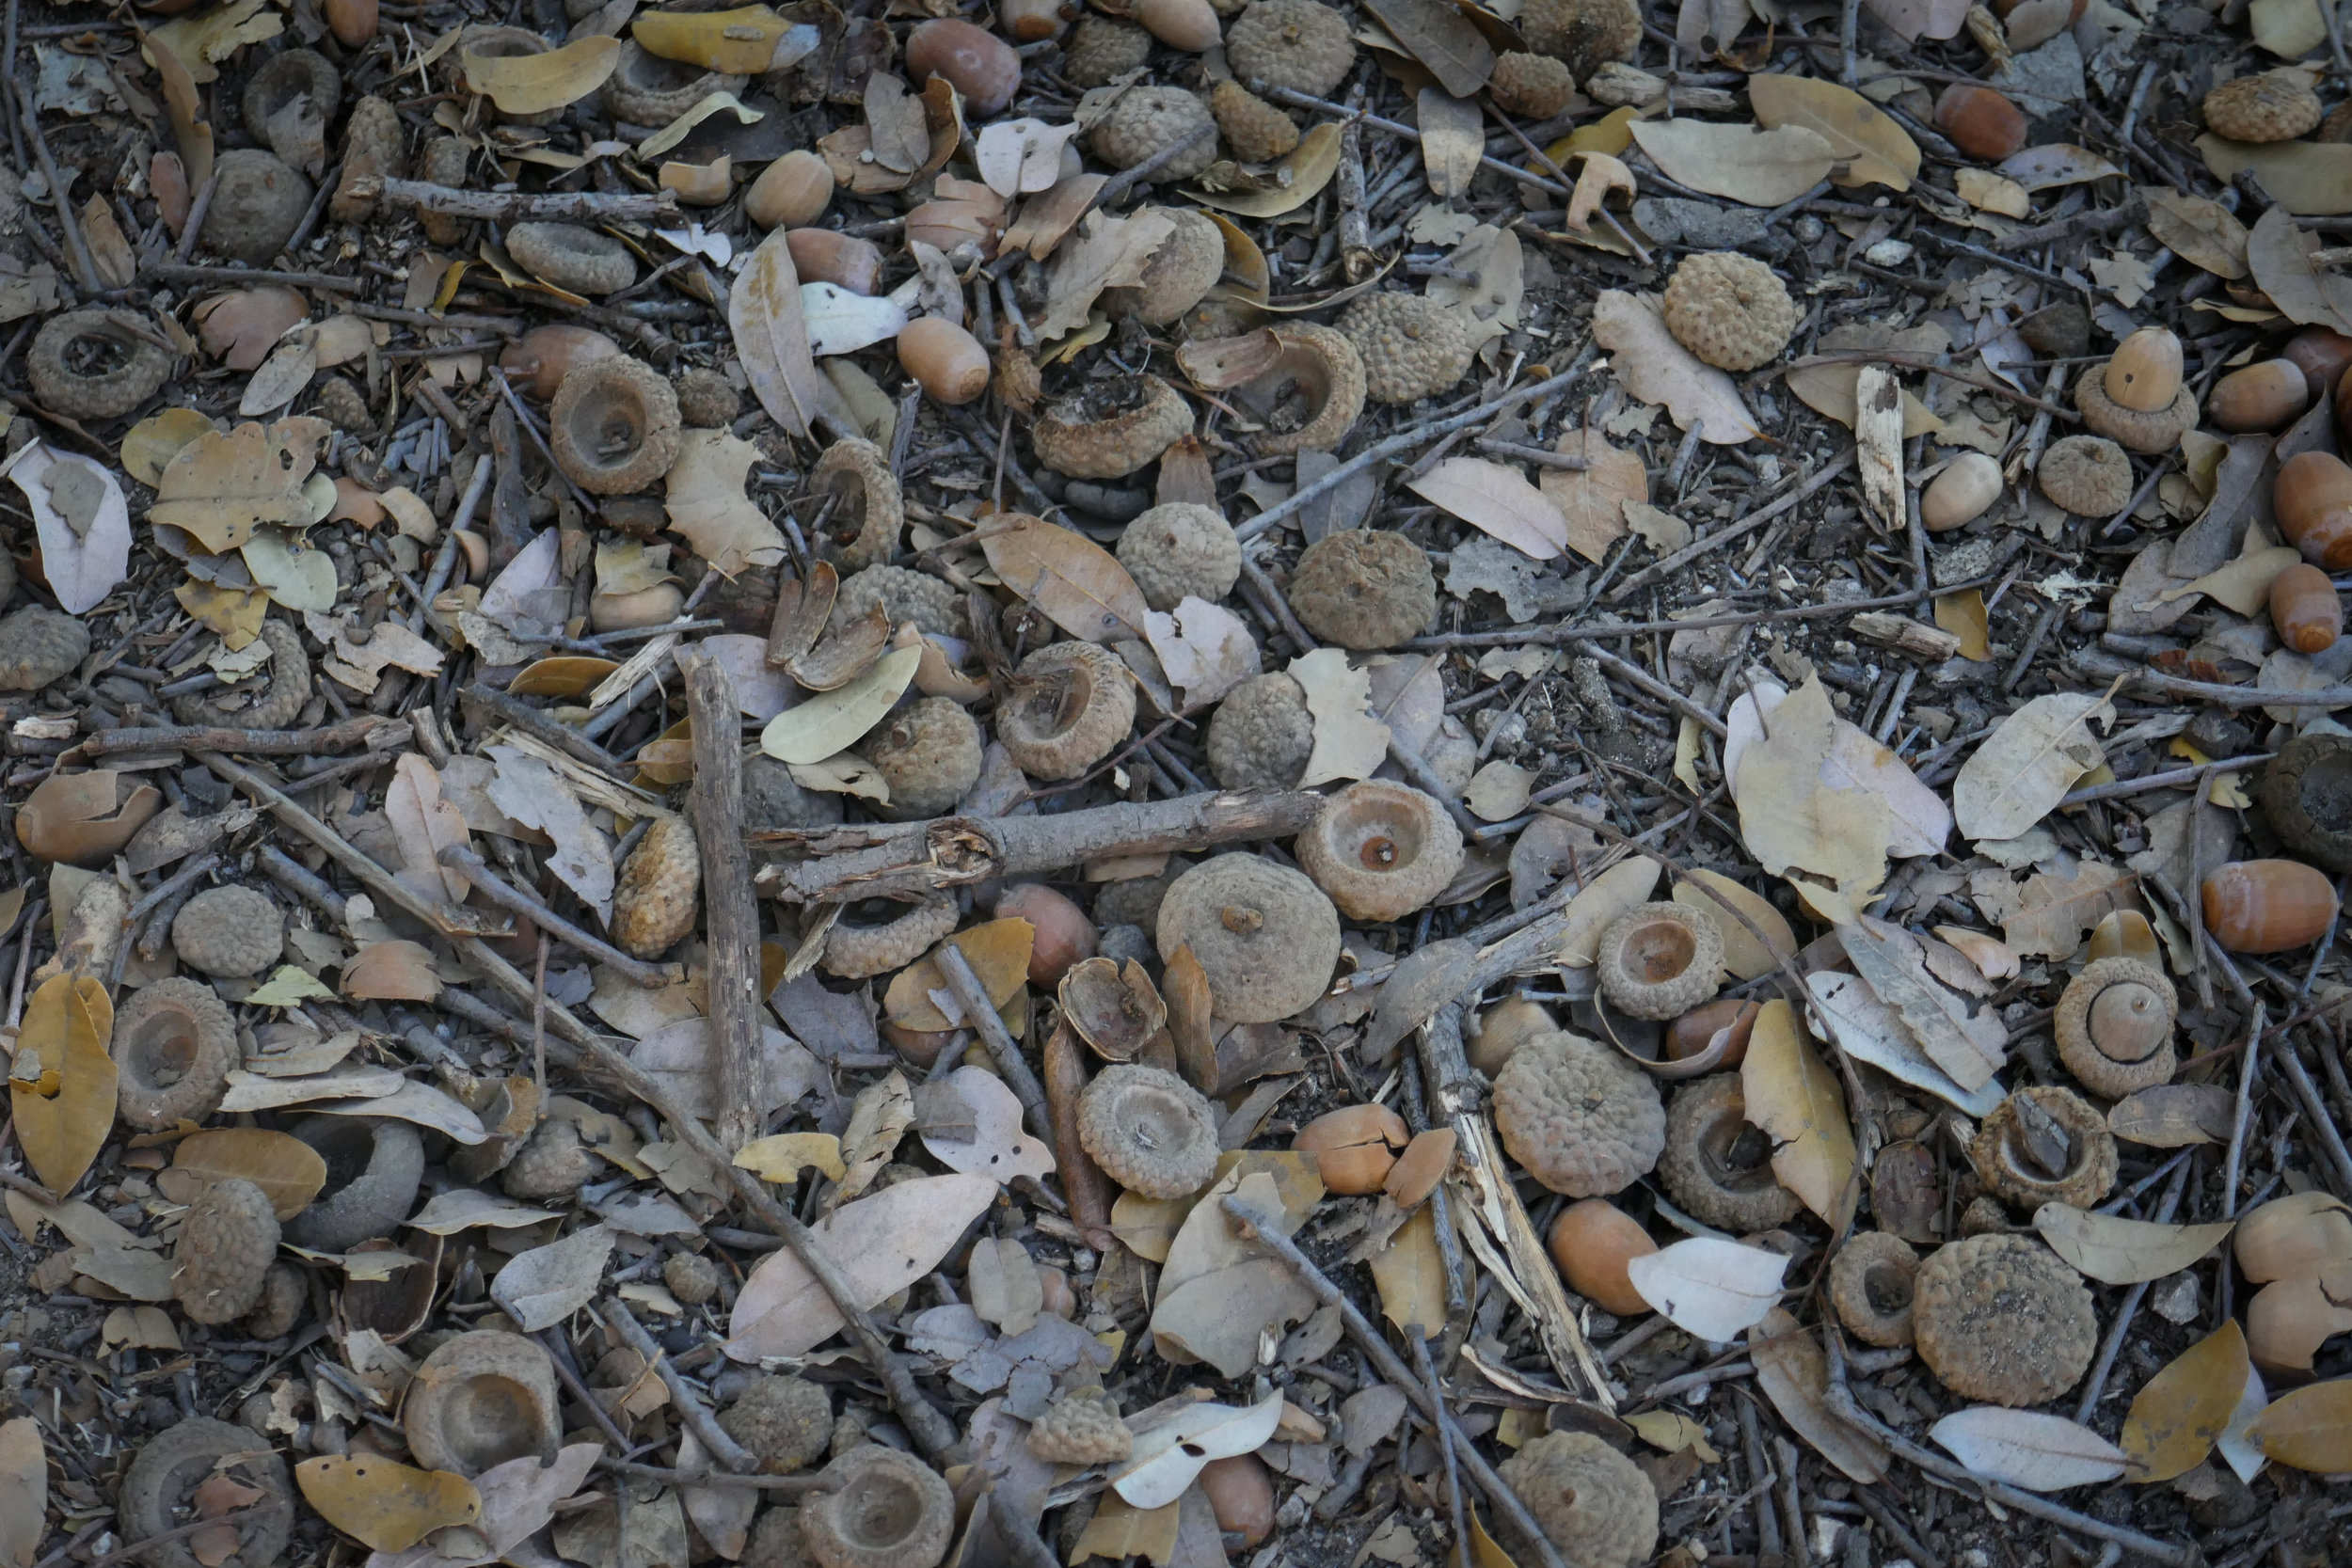 Lots of acorns. The squirrels must be so happy.